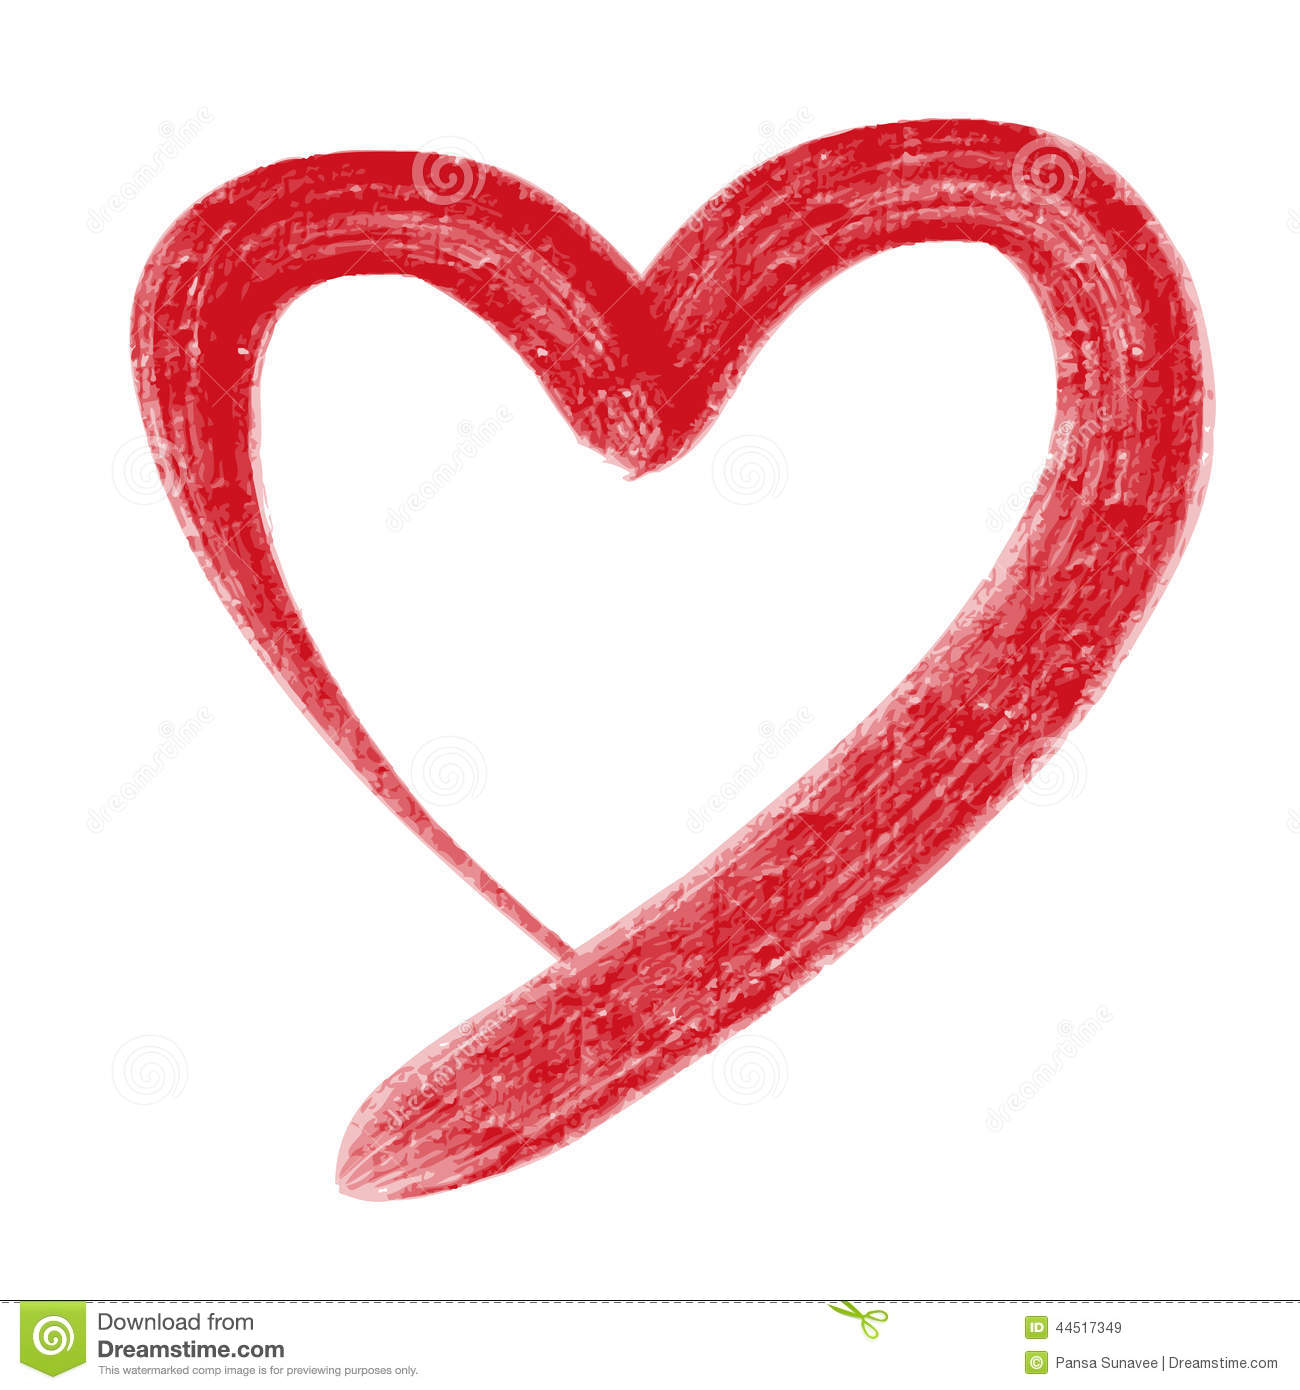 Drawn heart lipstick Red Heart Free Clipart